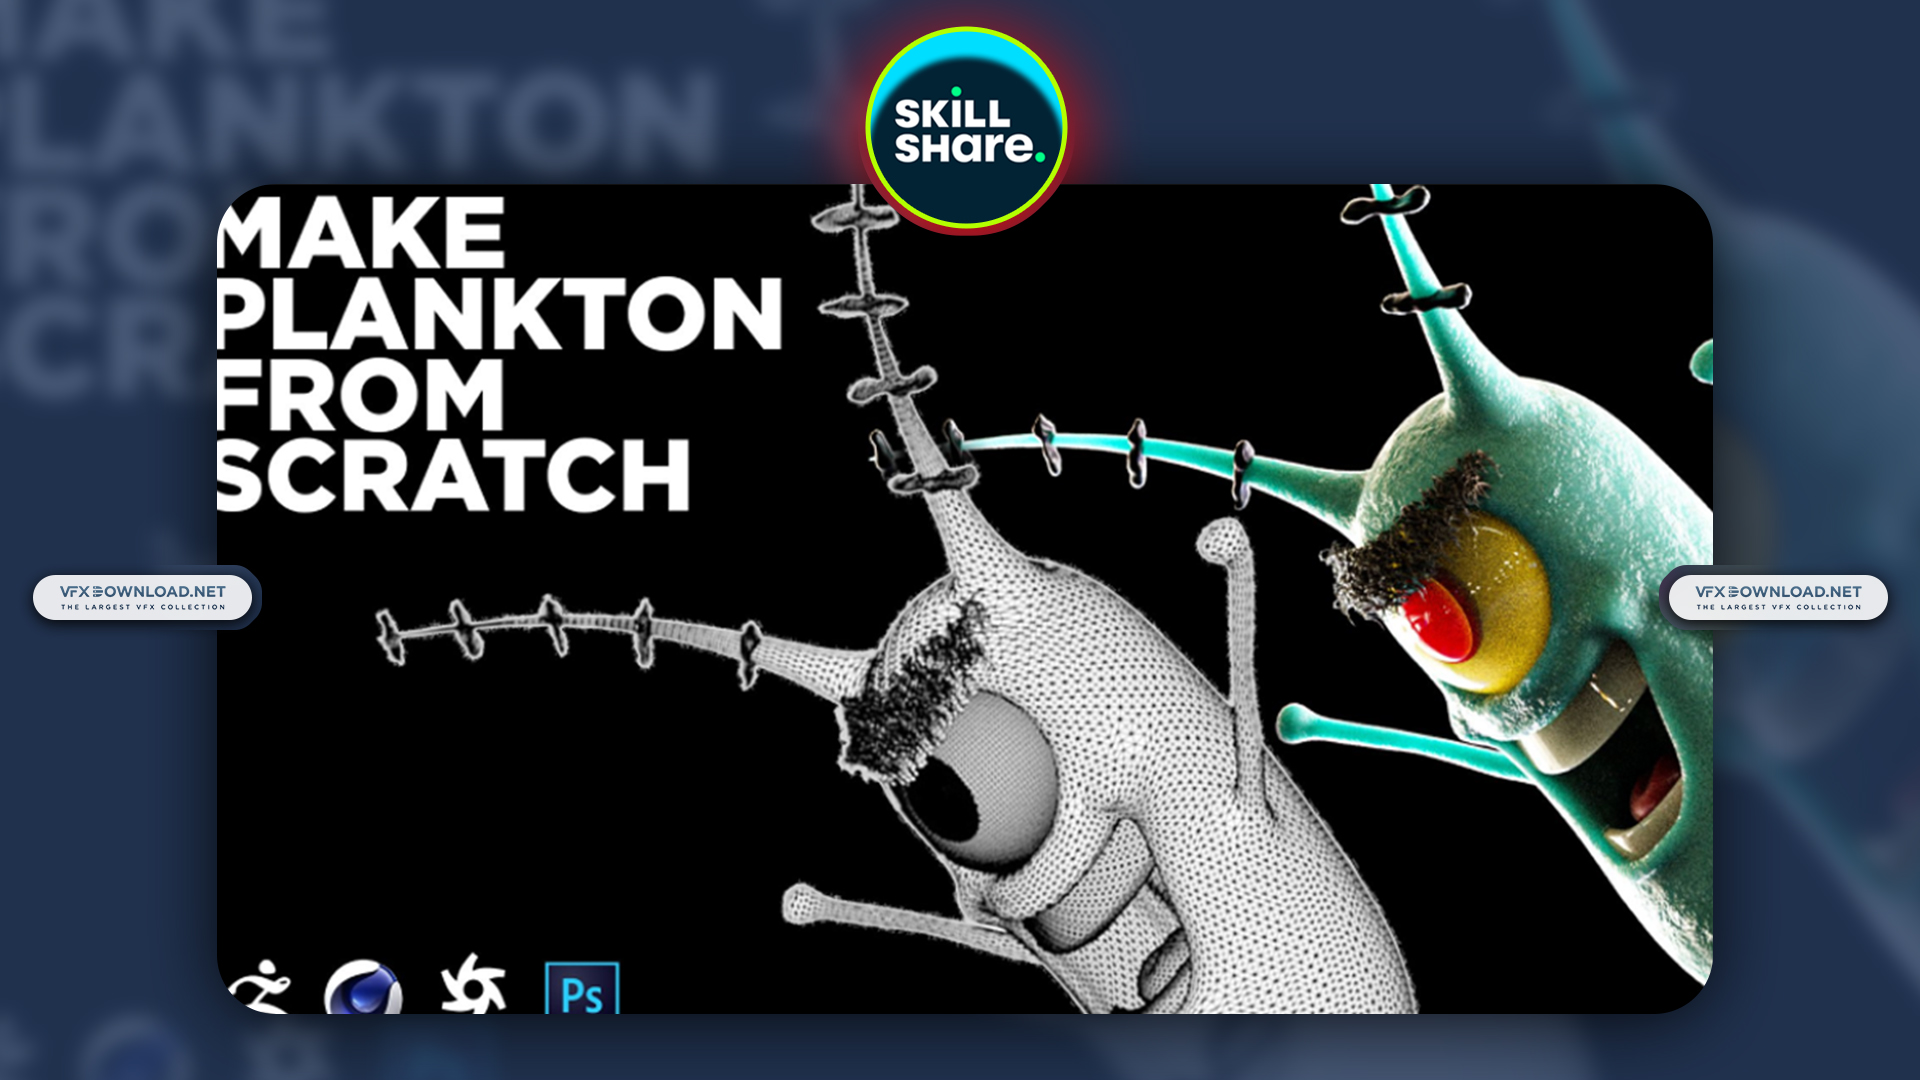 Create Plankton From Scratch Using Zbrush & Cinema 4D By Patrick Foley